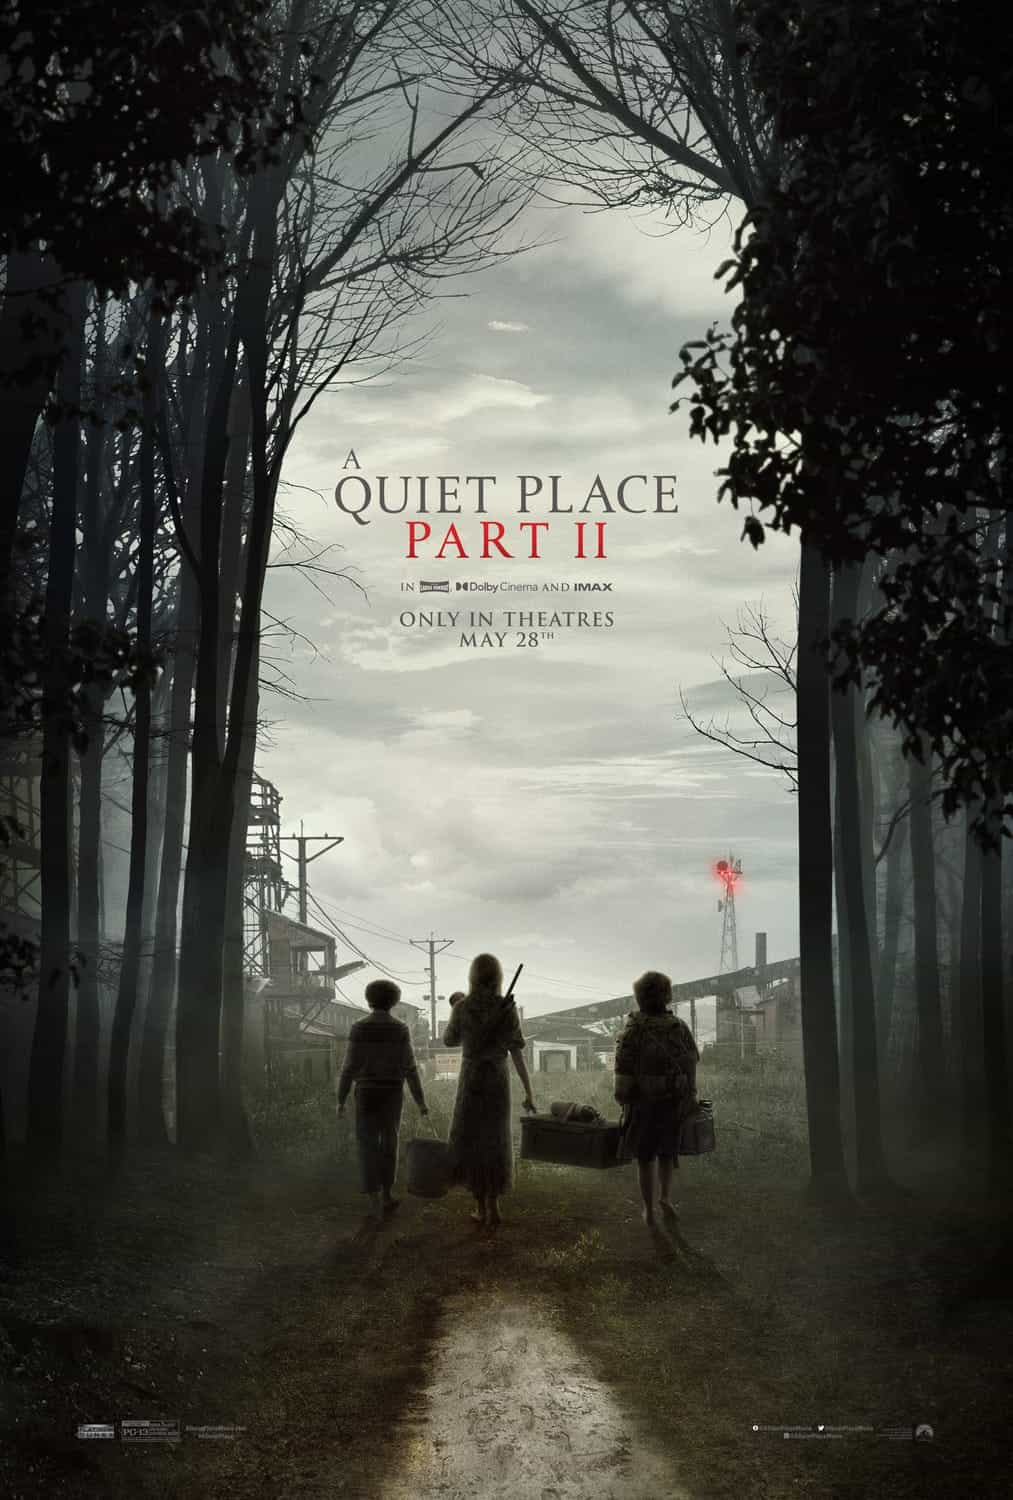 Final trailer for A Quiet Place Part II ahead of the movies UK June 4th release